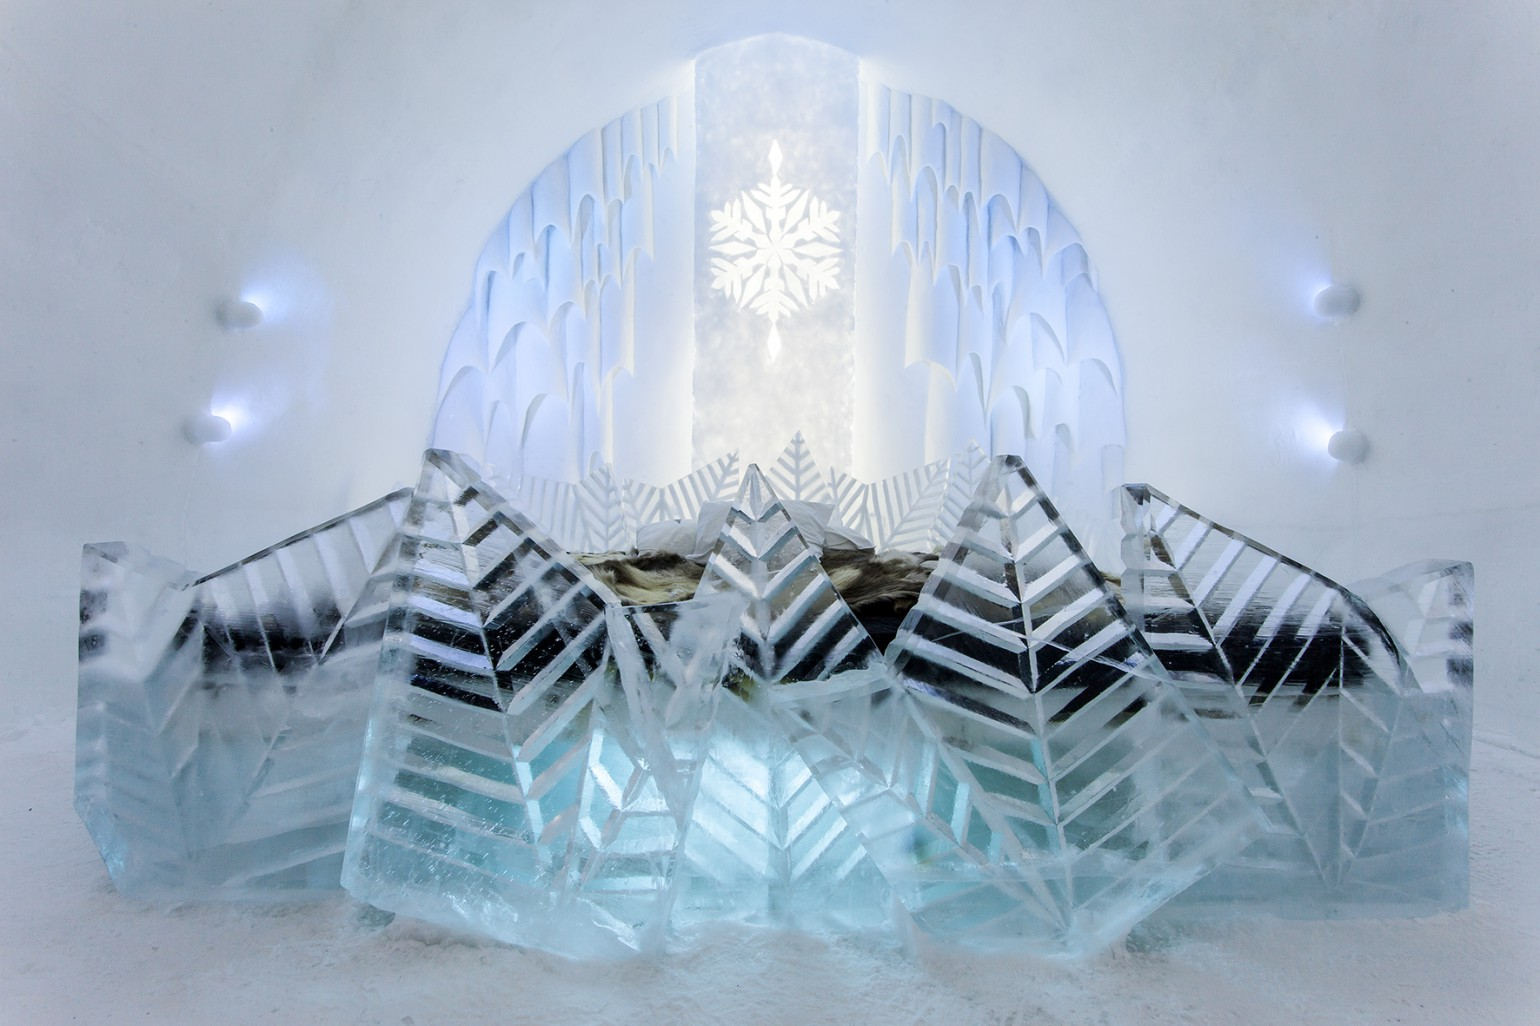 frosty_flower_2_photo_christian_stromqvist_design_icehotel